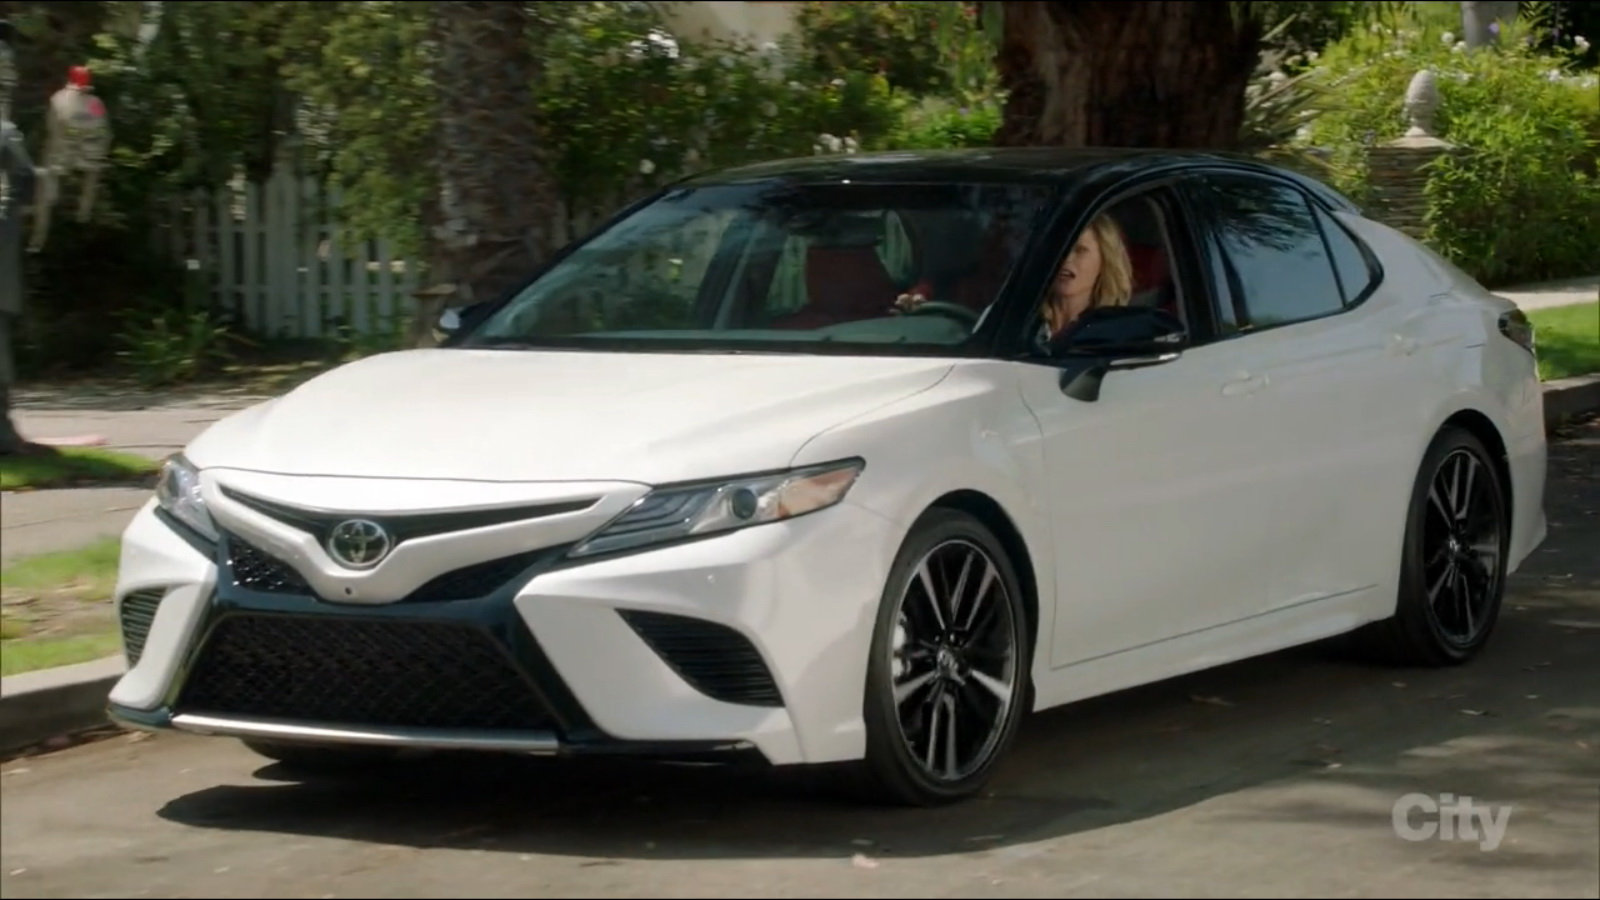 2017 Dodge Ram >> Toyota Camry Car Driven by Julie Bowen in Modern Family ...